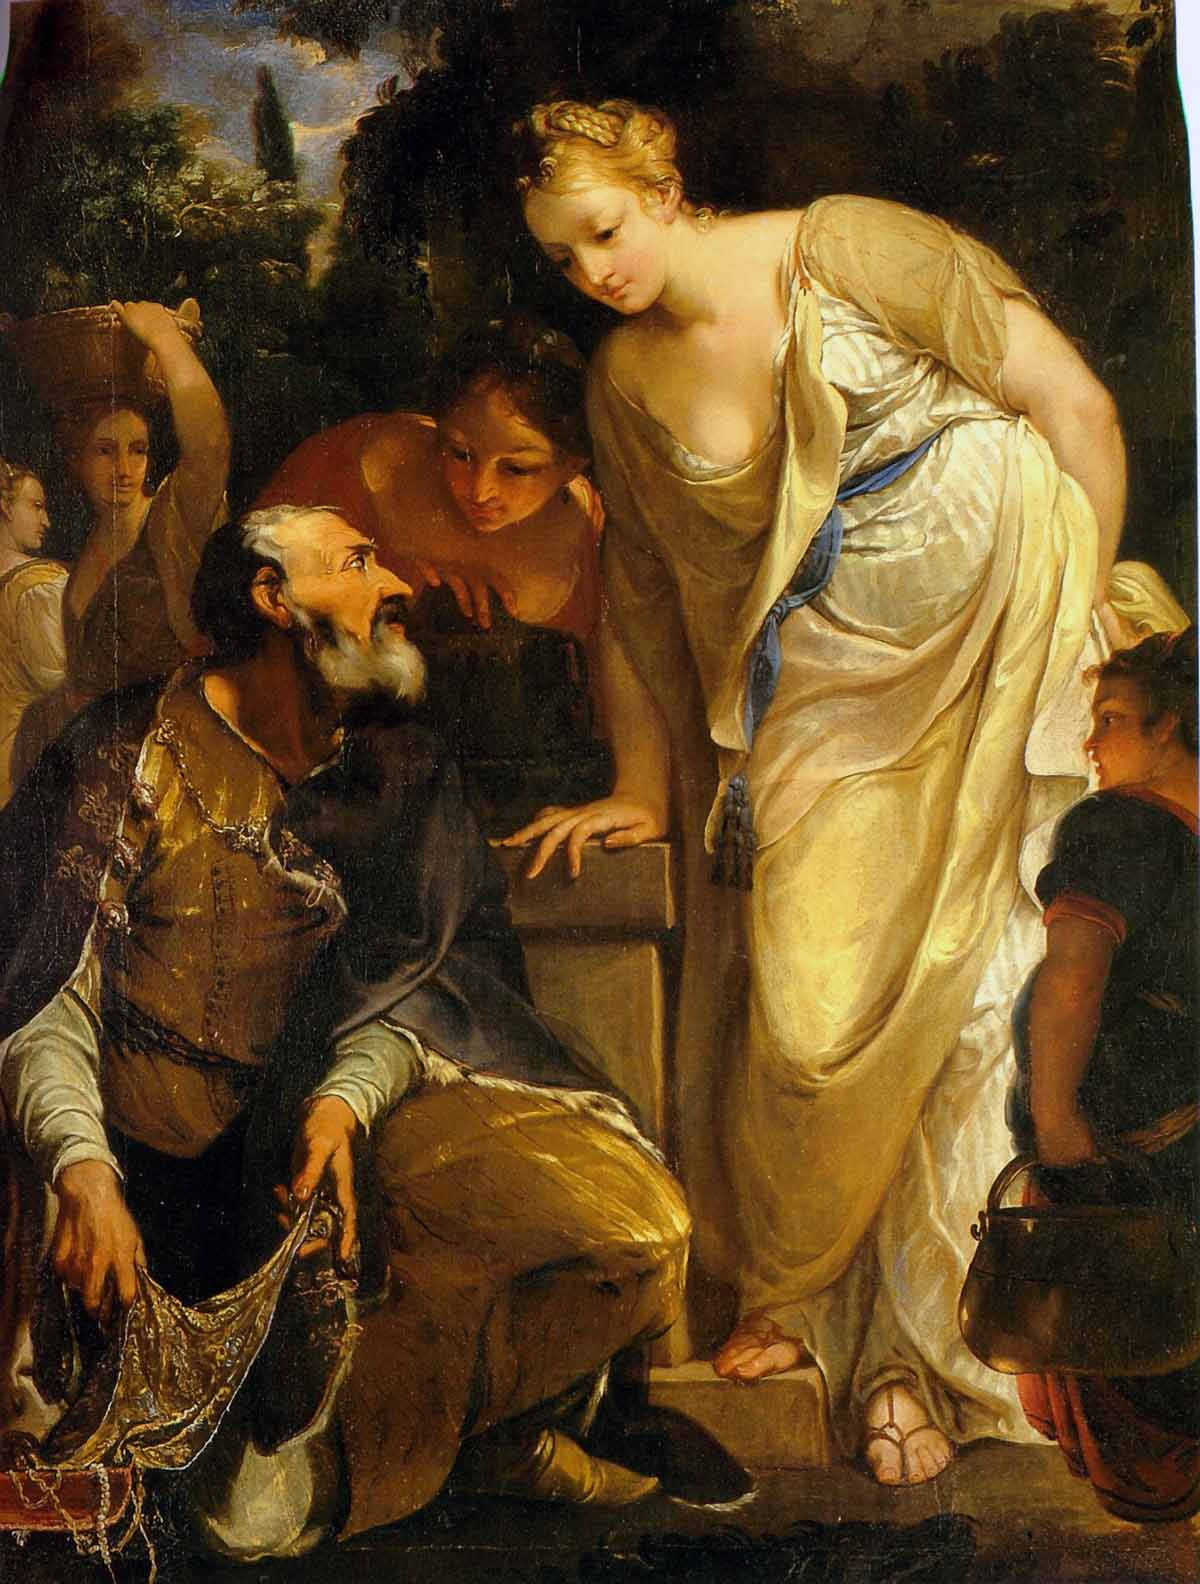 Rebecca at the Well, Antonio Bellucci cir. 1700